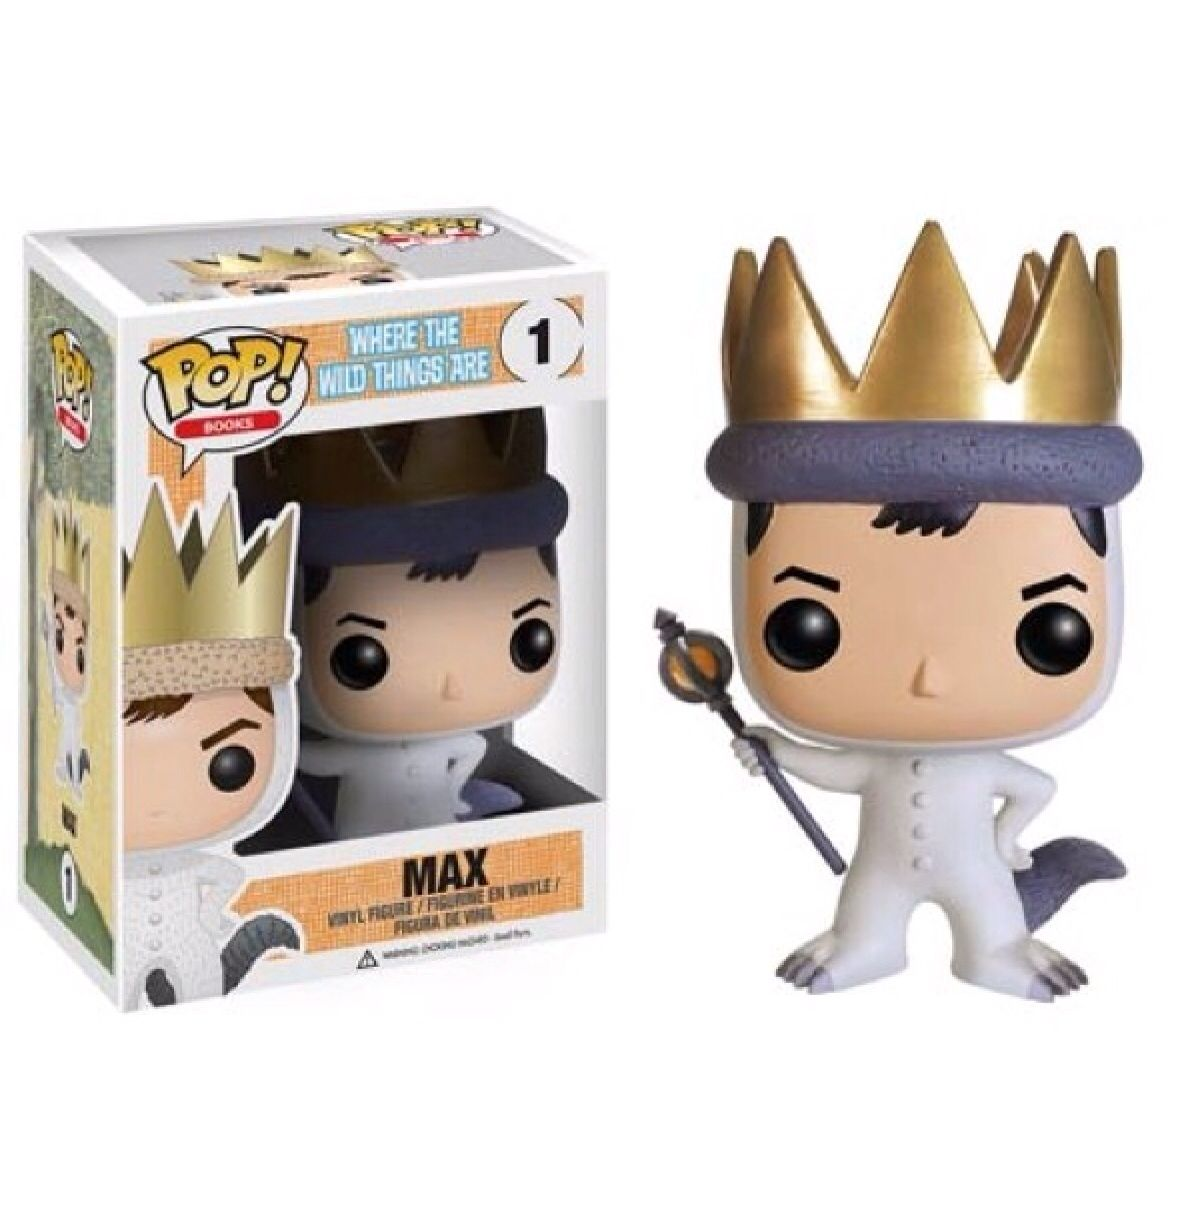 Max From Where The Wild Things Are Funko Pop Vinyl Funko Pop Toys Funko Pop Dolls Pop Book